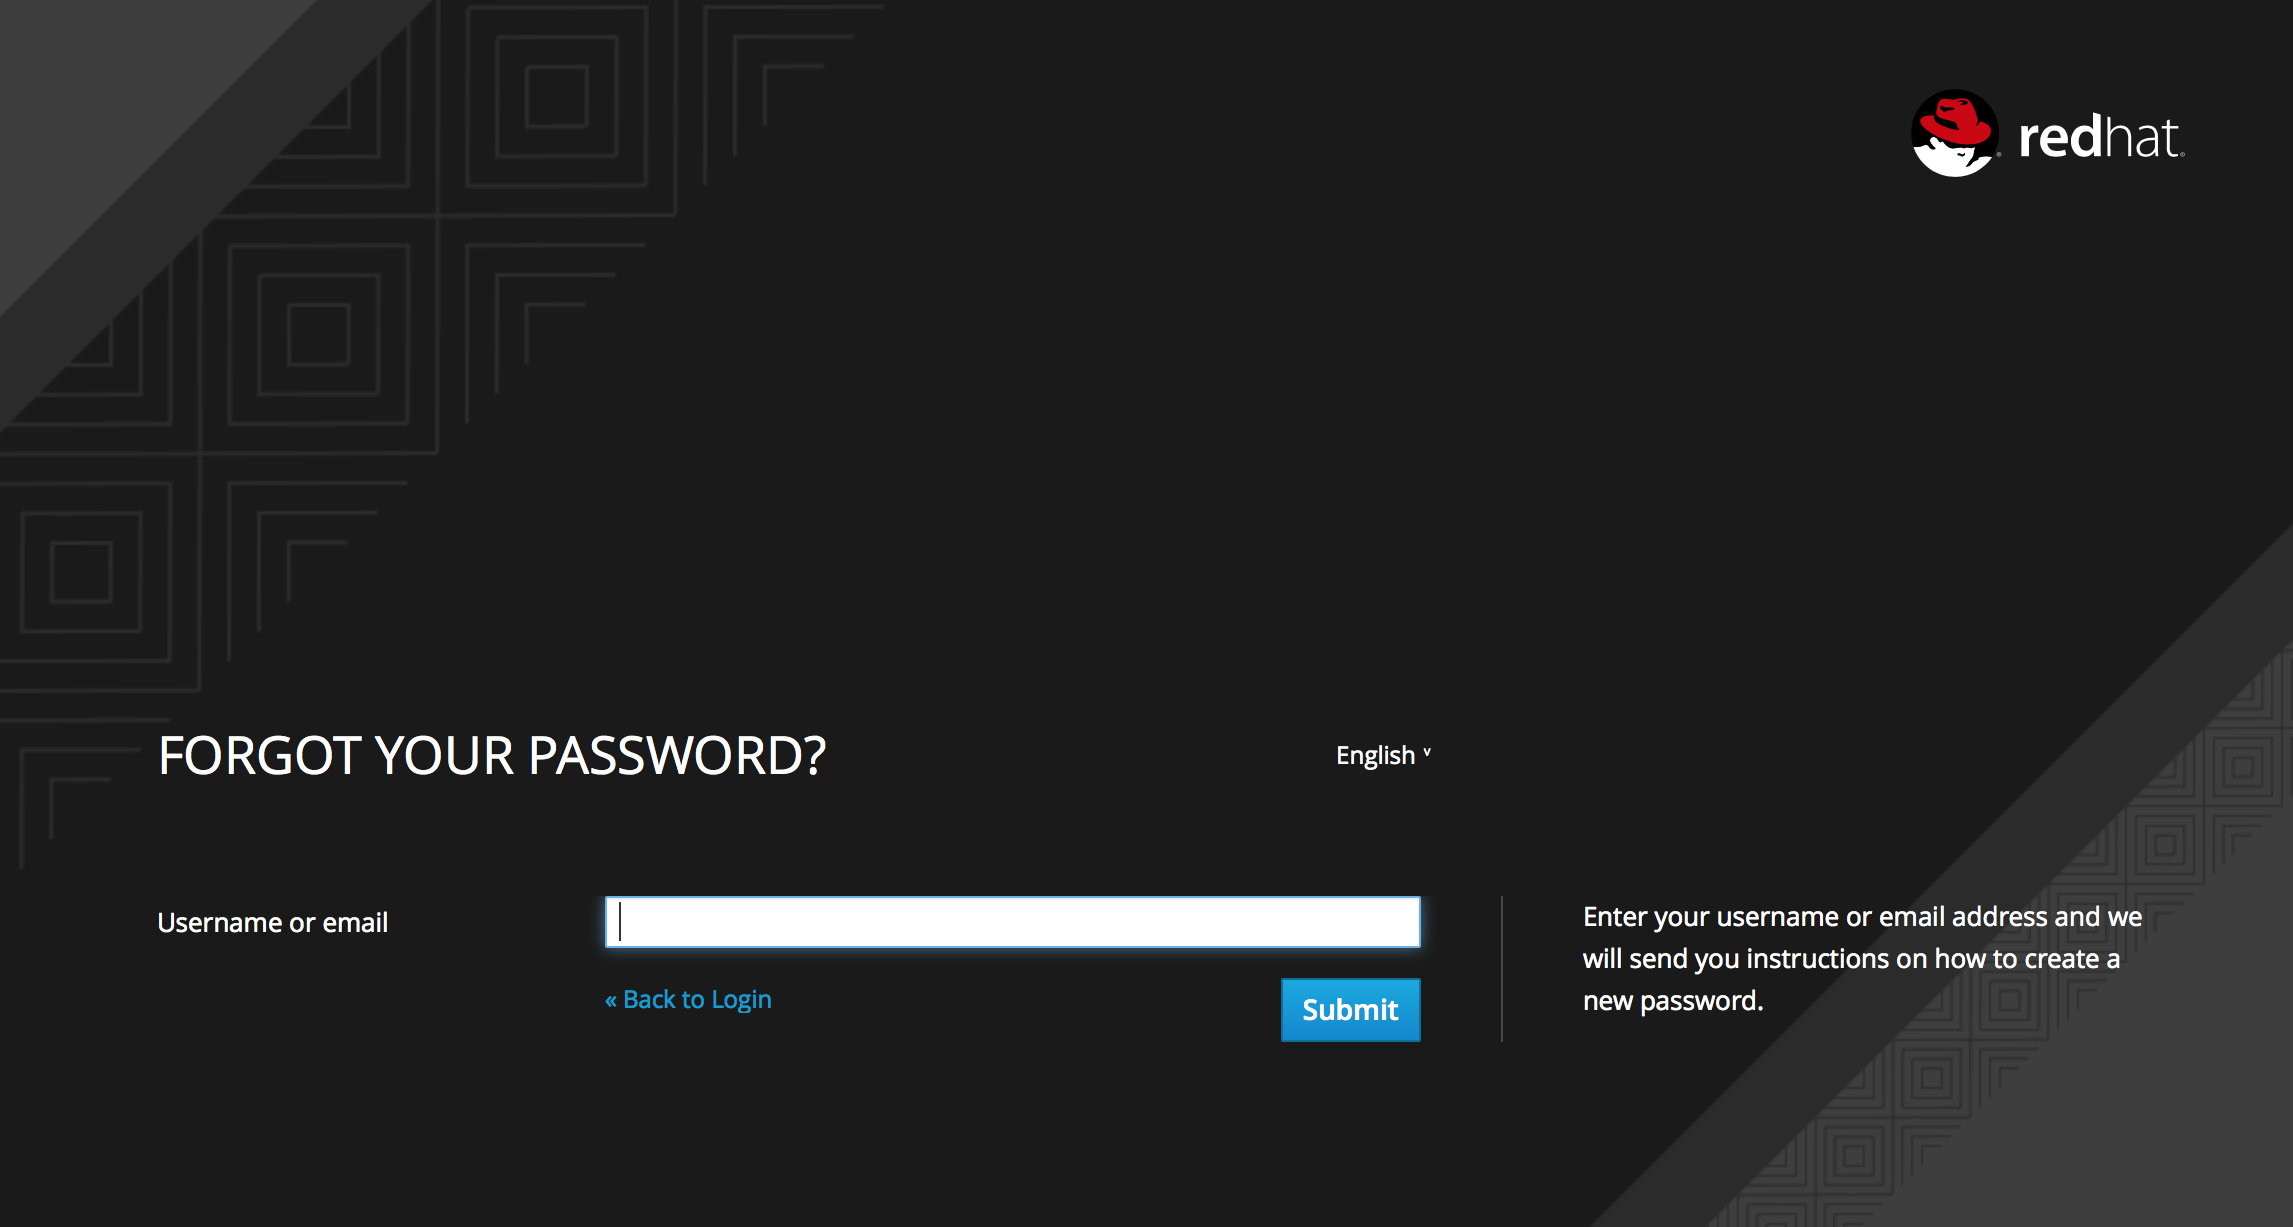 forgot password page